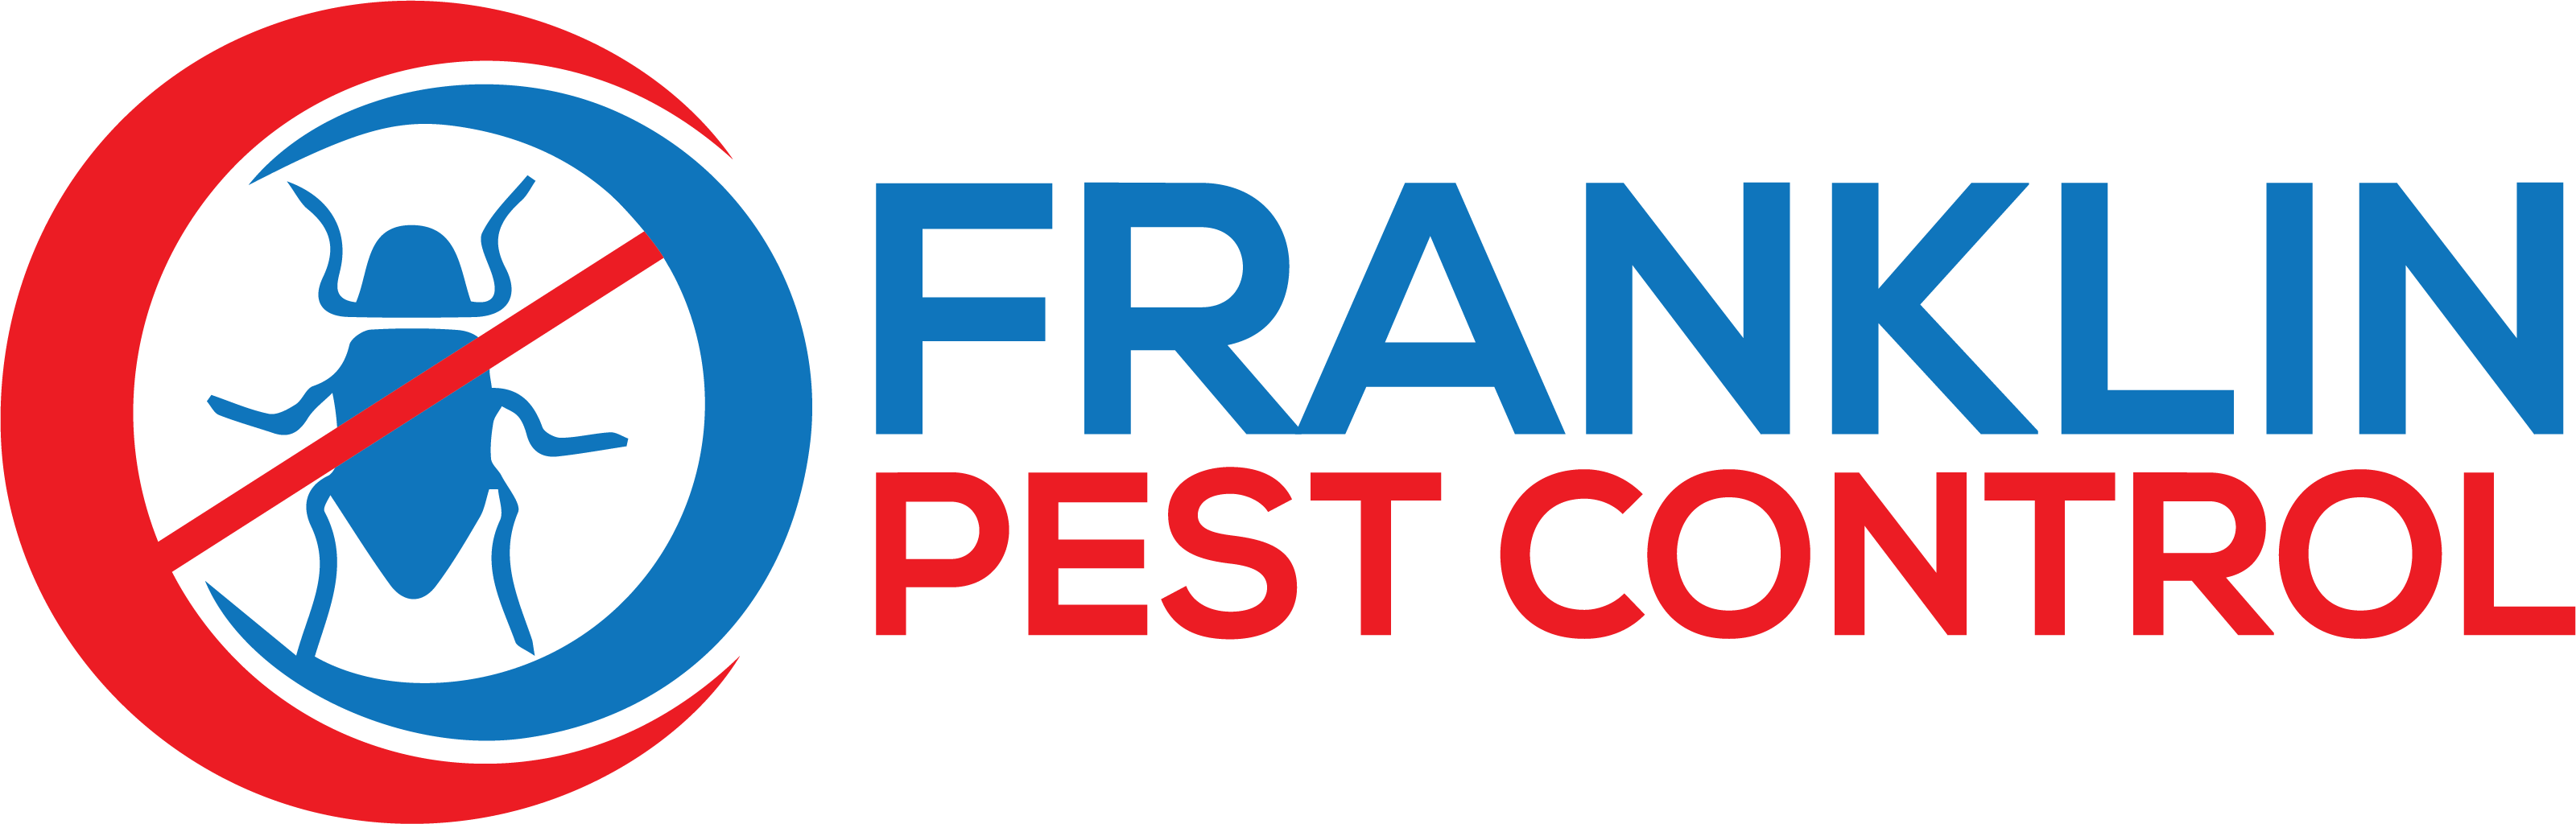 Franklin Pest Control Helps Keep Homes Bug Free All Summer With Superior Franklin, TN Pest Management Solutions